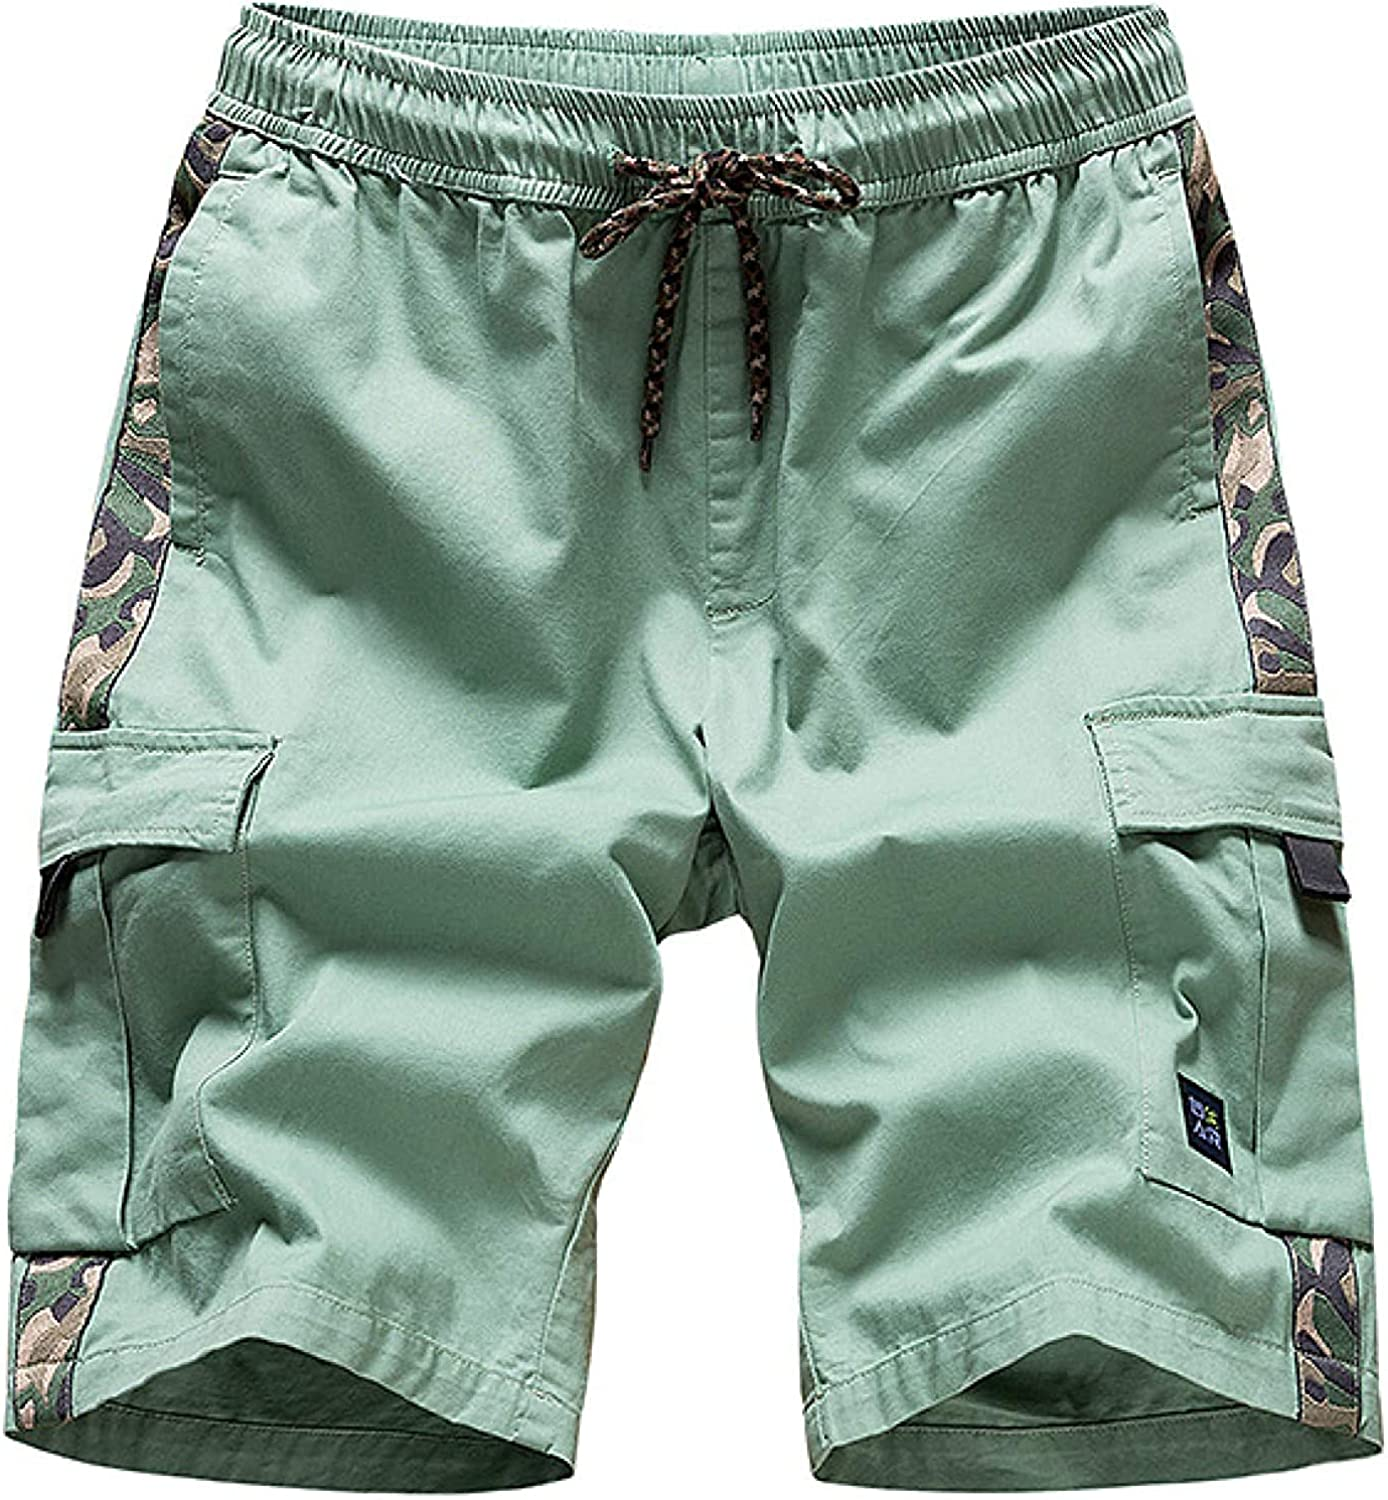 Men's Stitching Camouflage Cargo Shorts Fashion Trend All-Match Streetwear